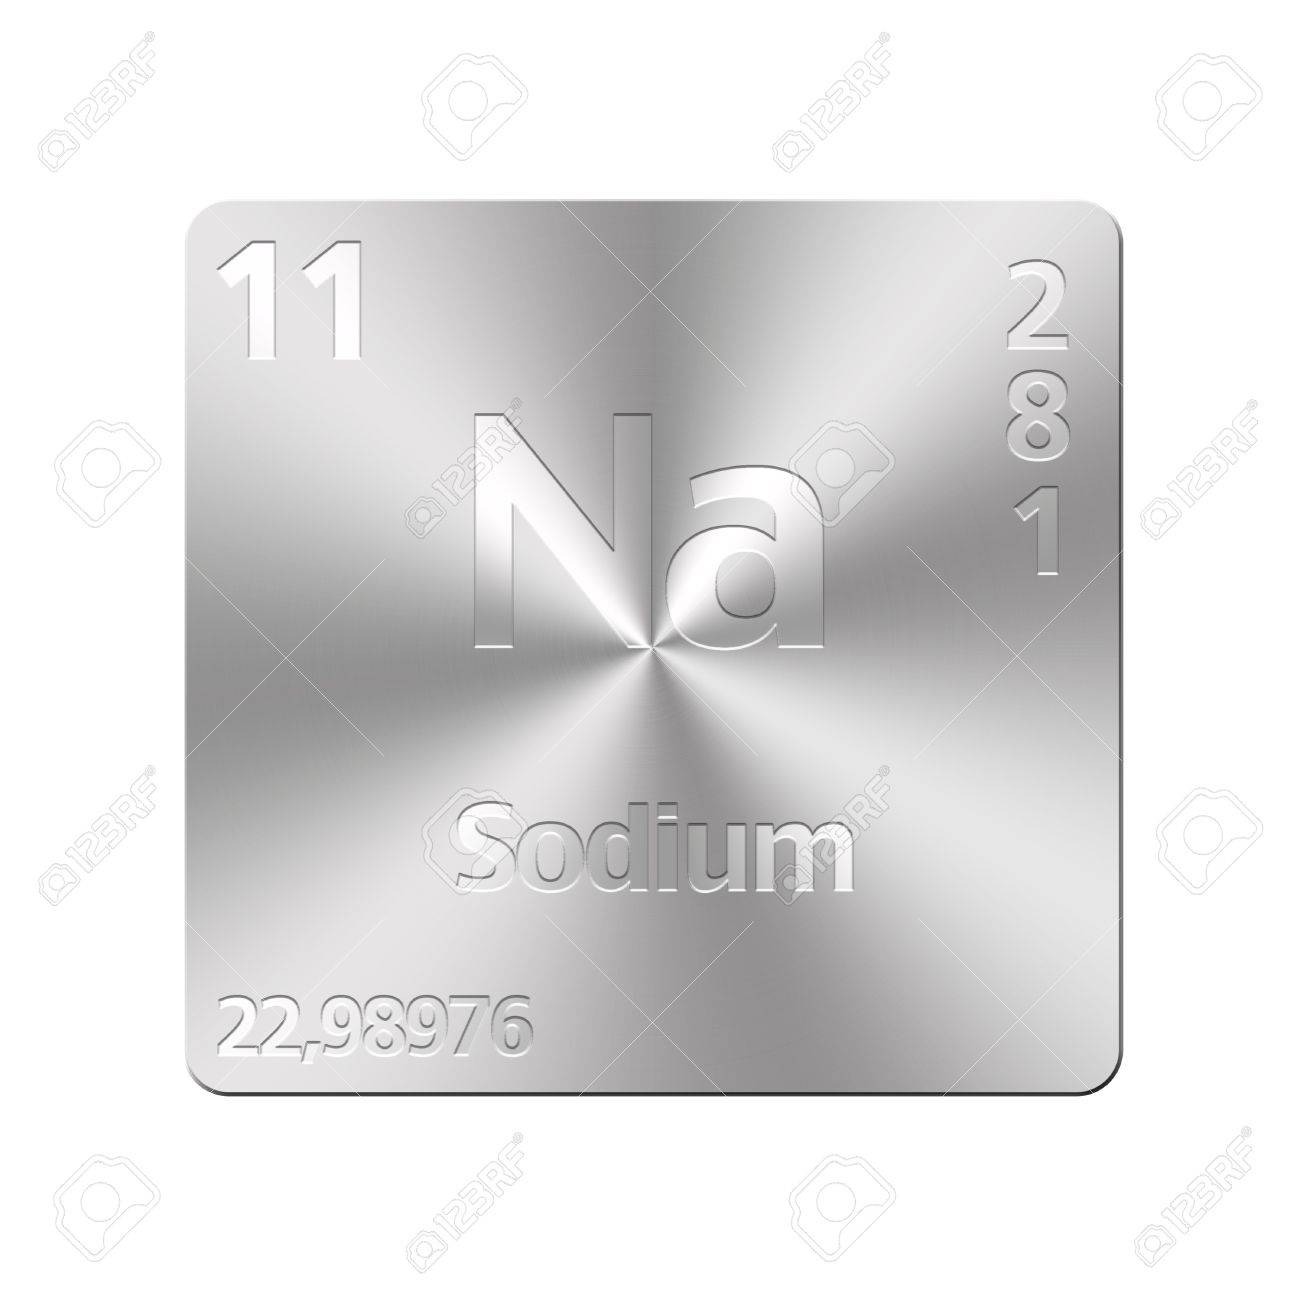 Isolated metal button with periodic table sodium stock photo isolated metal button with periodic table sodium stock photo 15972807 gamestrikefo Image collections